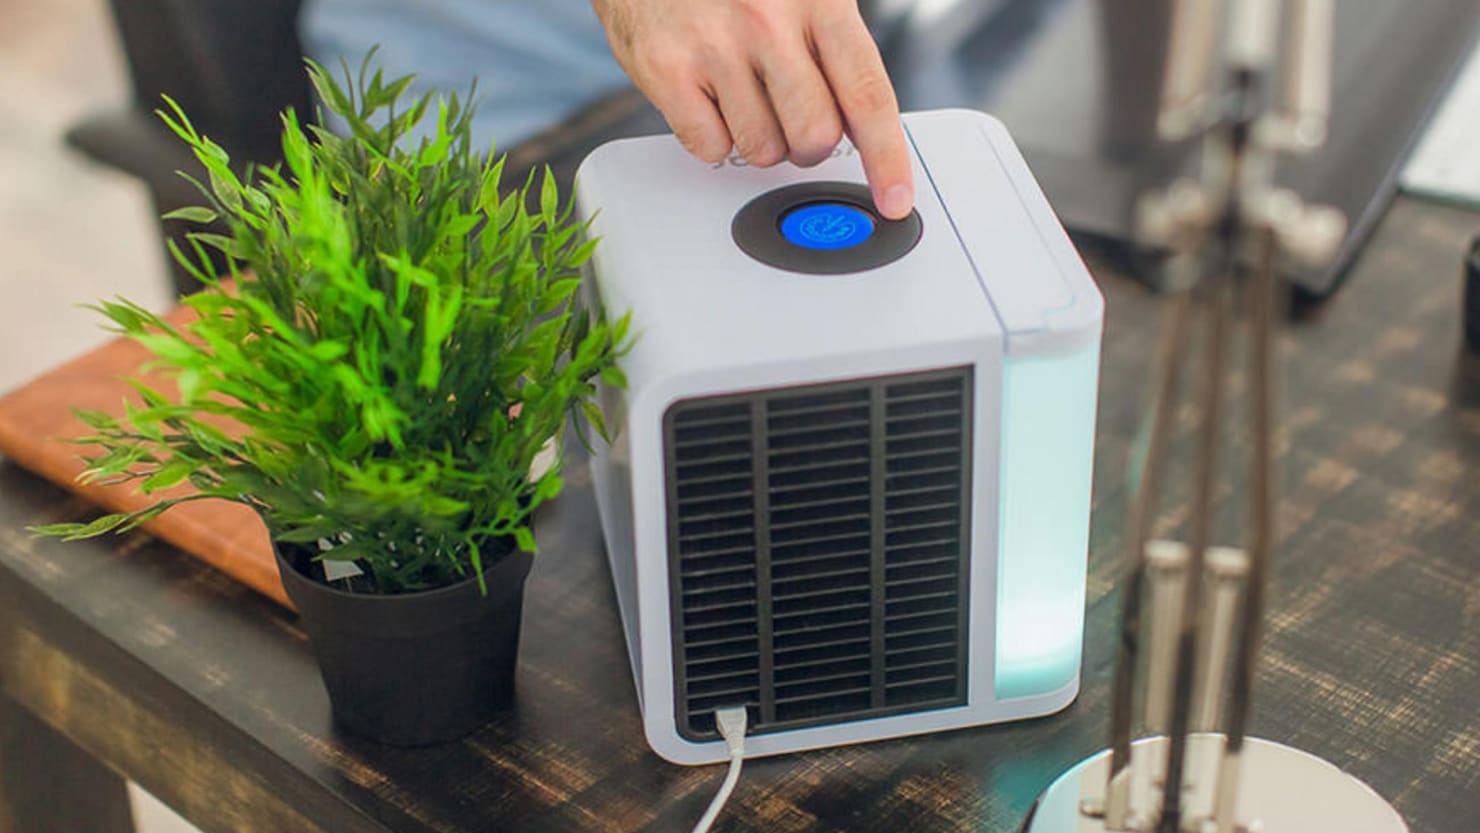 Save Money on Air Conditioning This Summer with This Personal Air Cooler